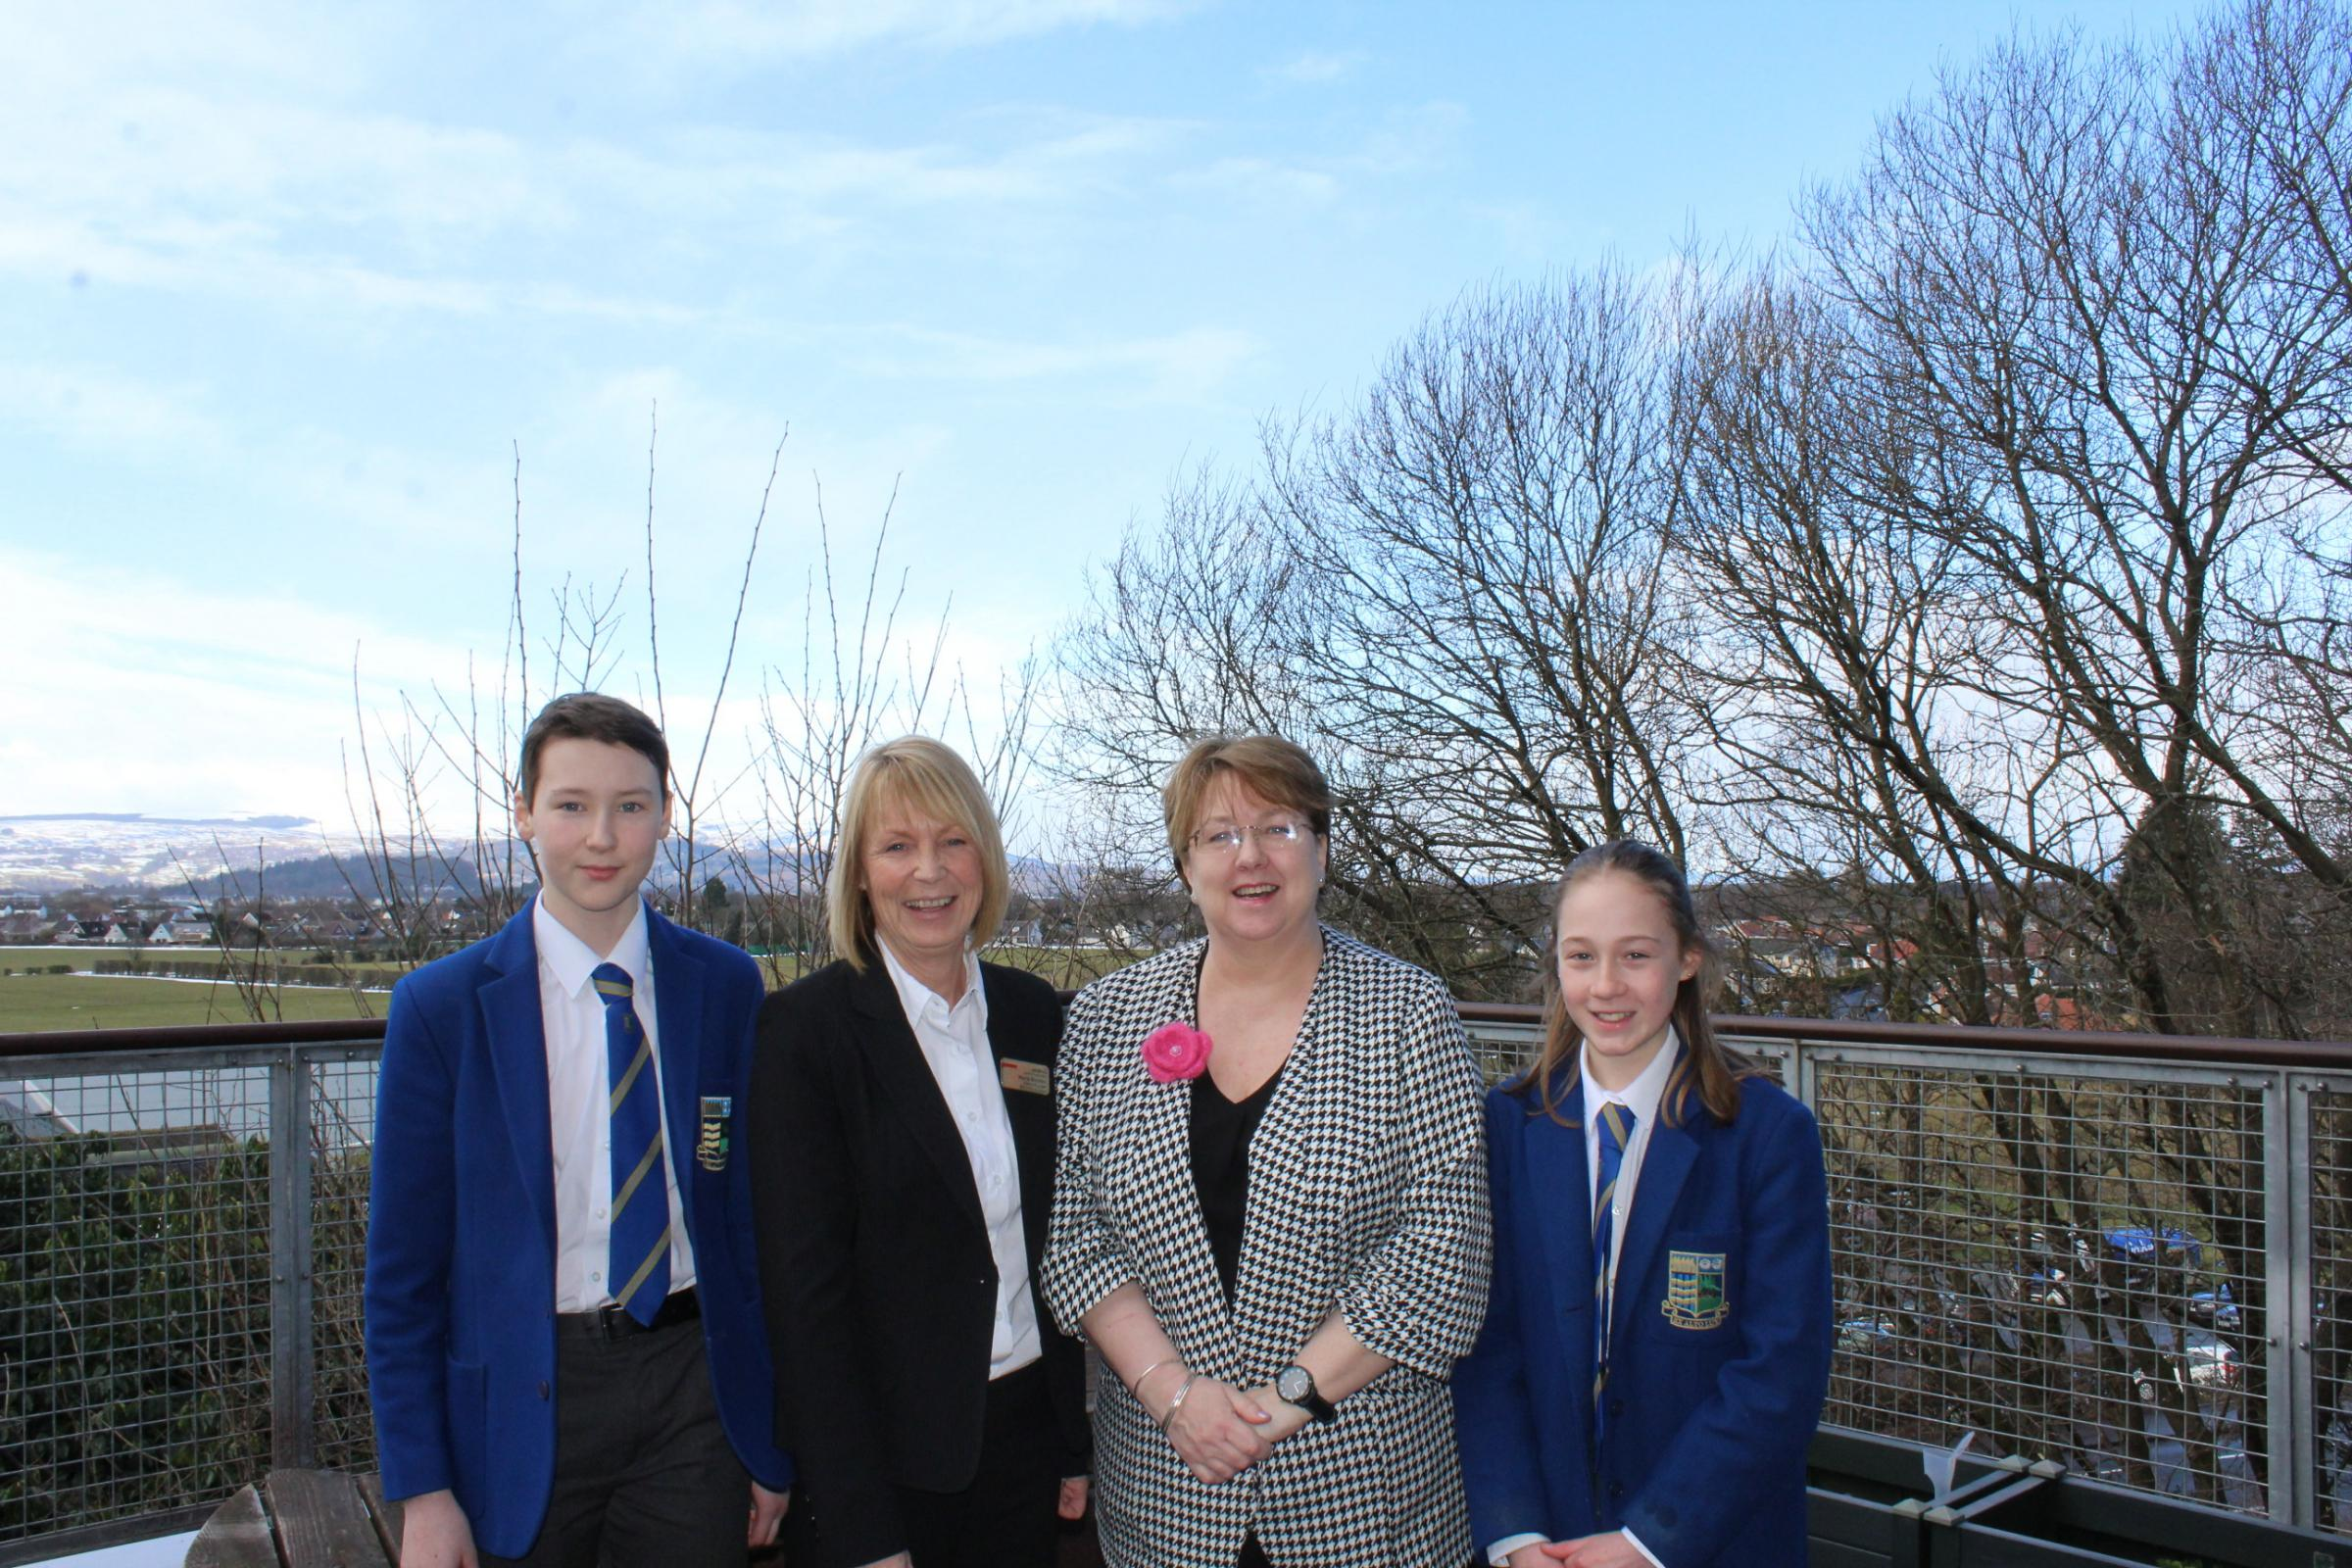 S1 pupil Rory Martin, Marie Brunton, Headteacher Sandra Bannerman and S1 pupil Heather Hale